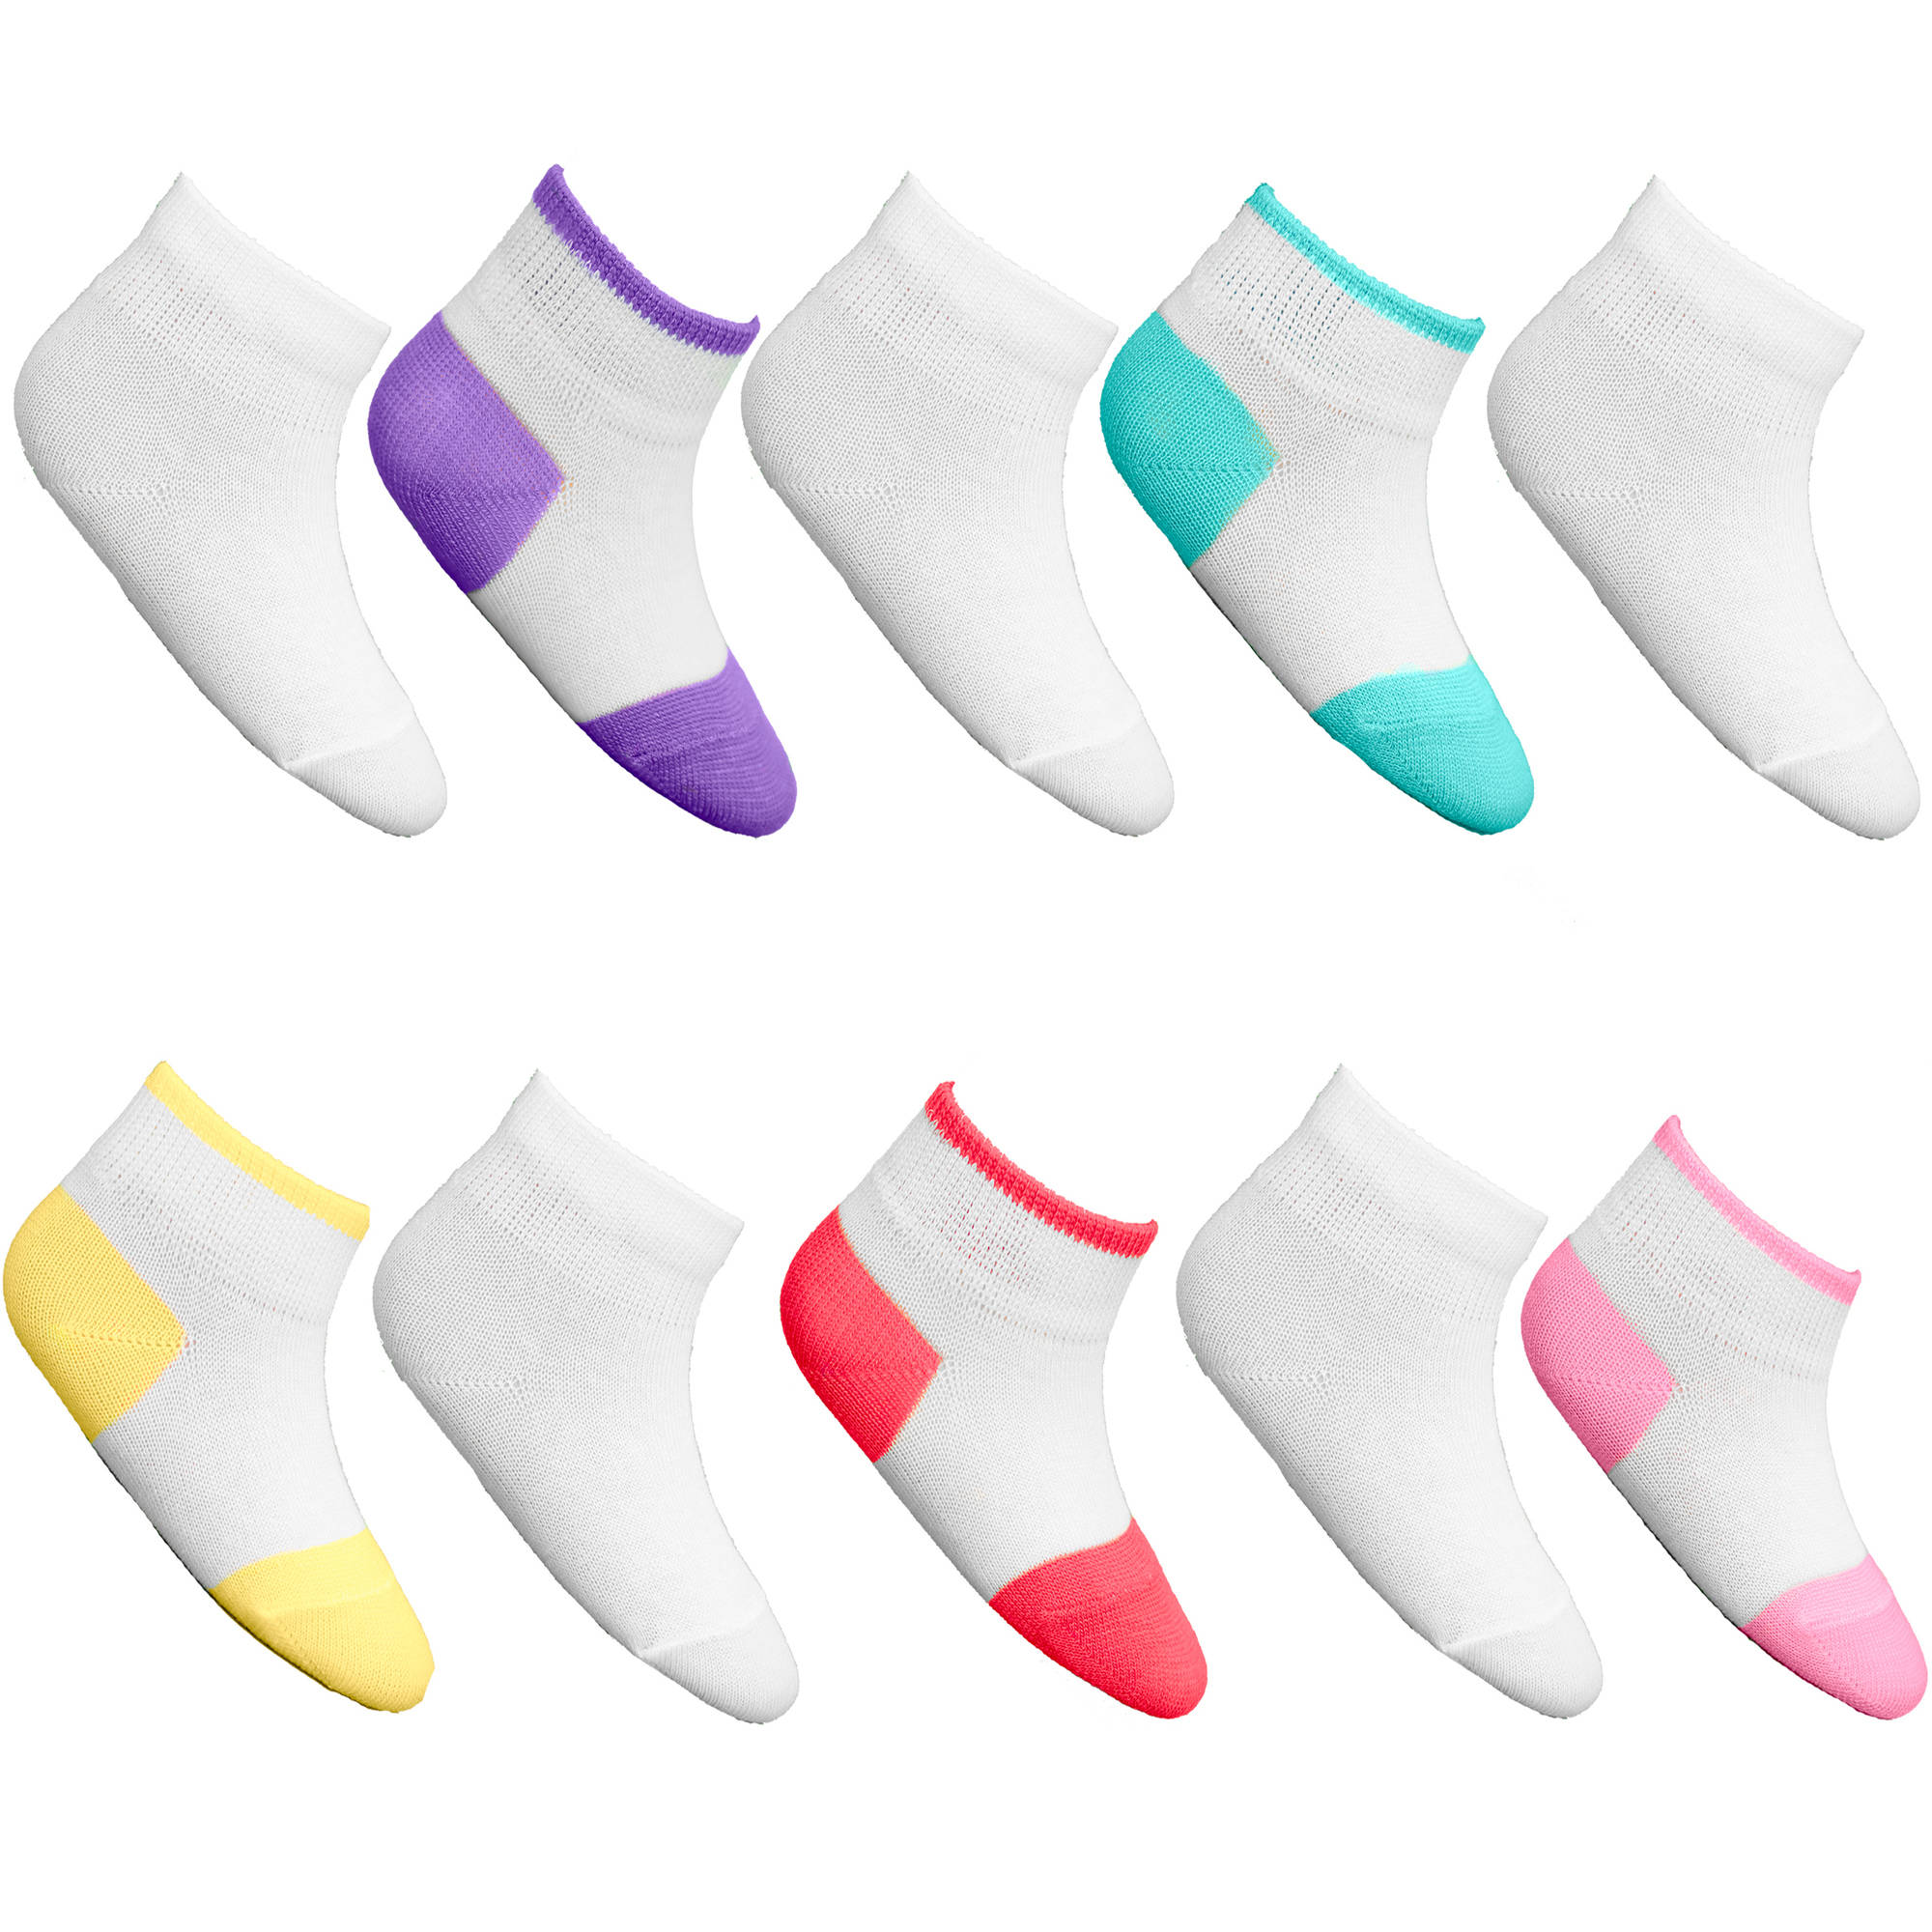 Fruit of the Loom Baby Girl Tuff n' Comfy Low Cut Socks - 10 Pack